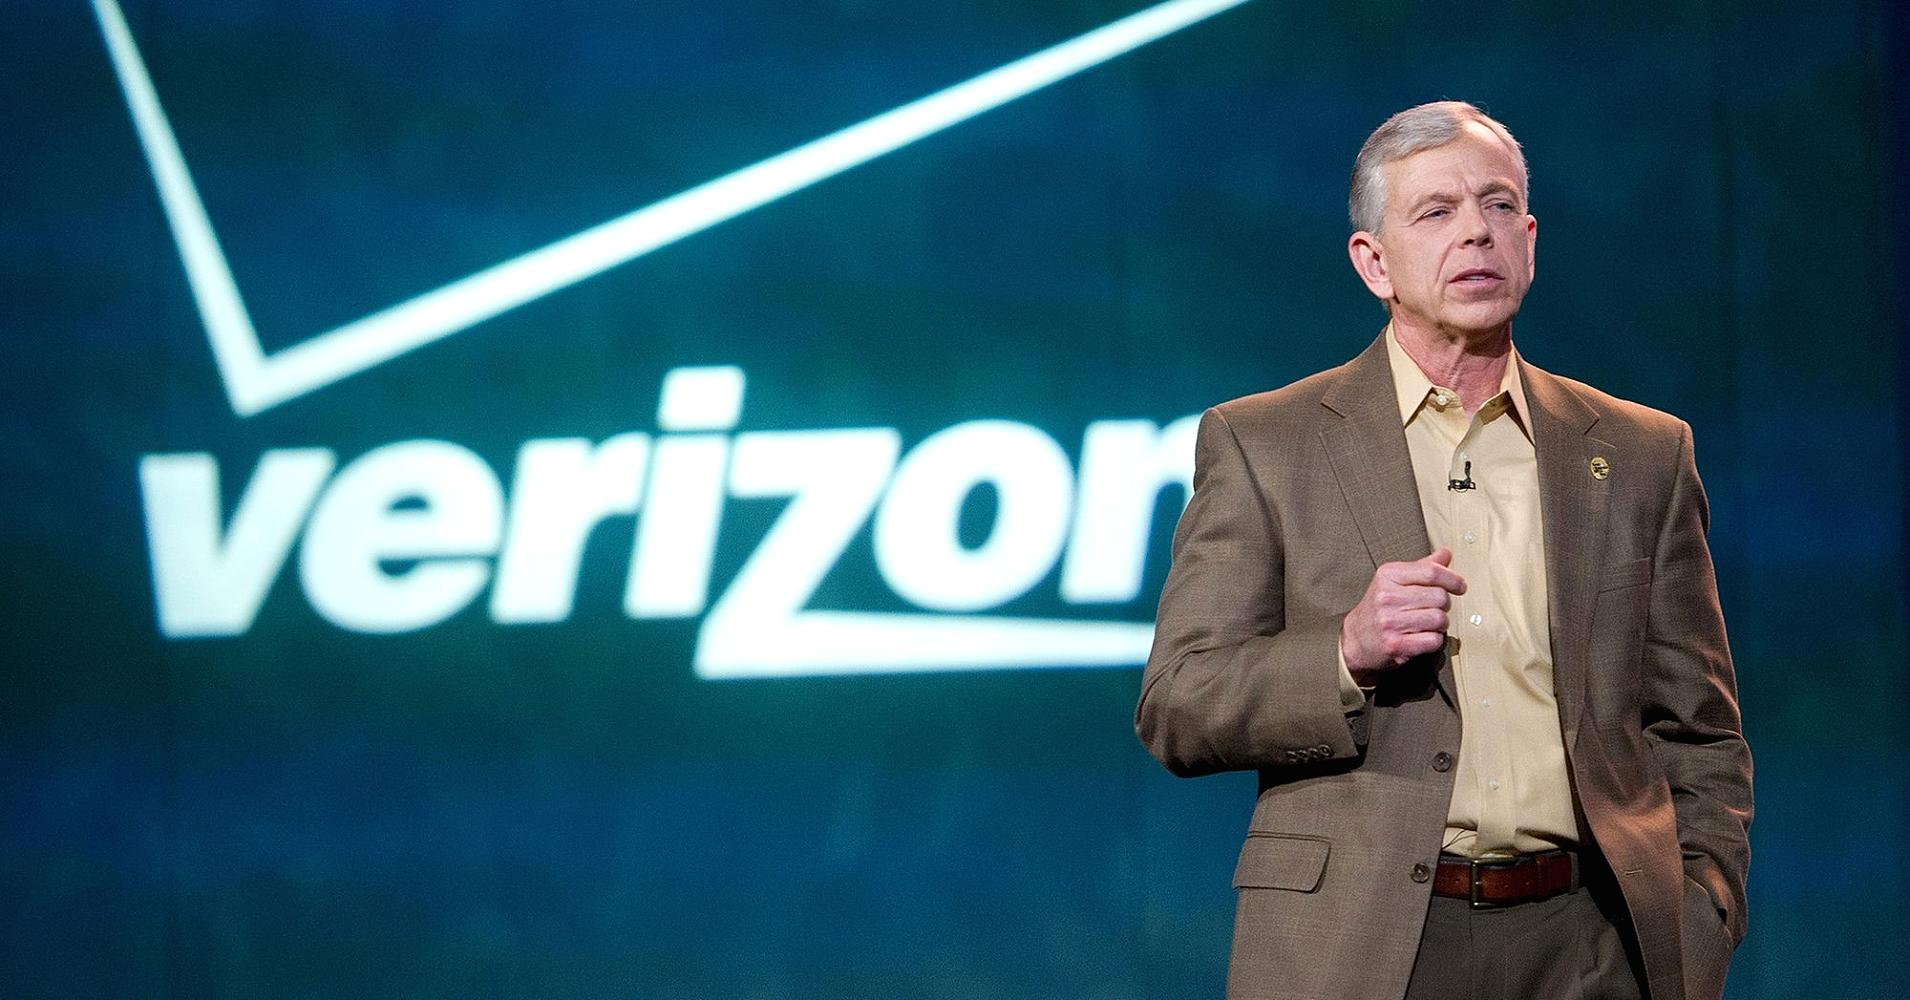 Yahoo slideshow 13 - Verizon CEO Lowell McAdam